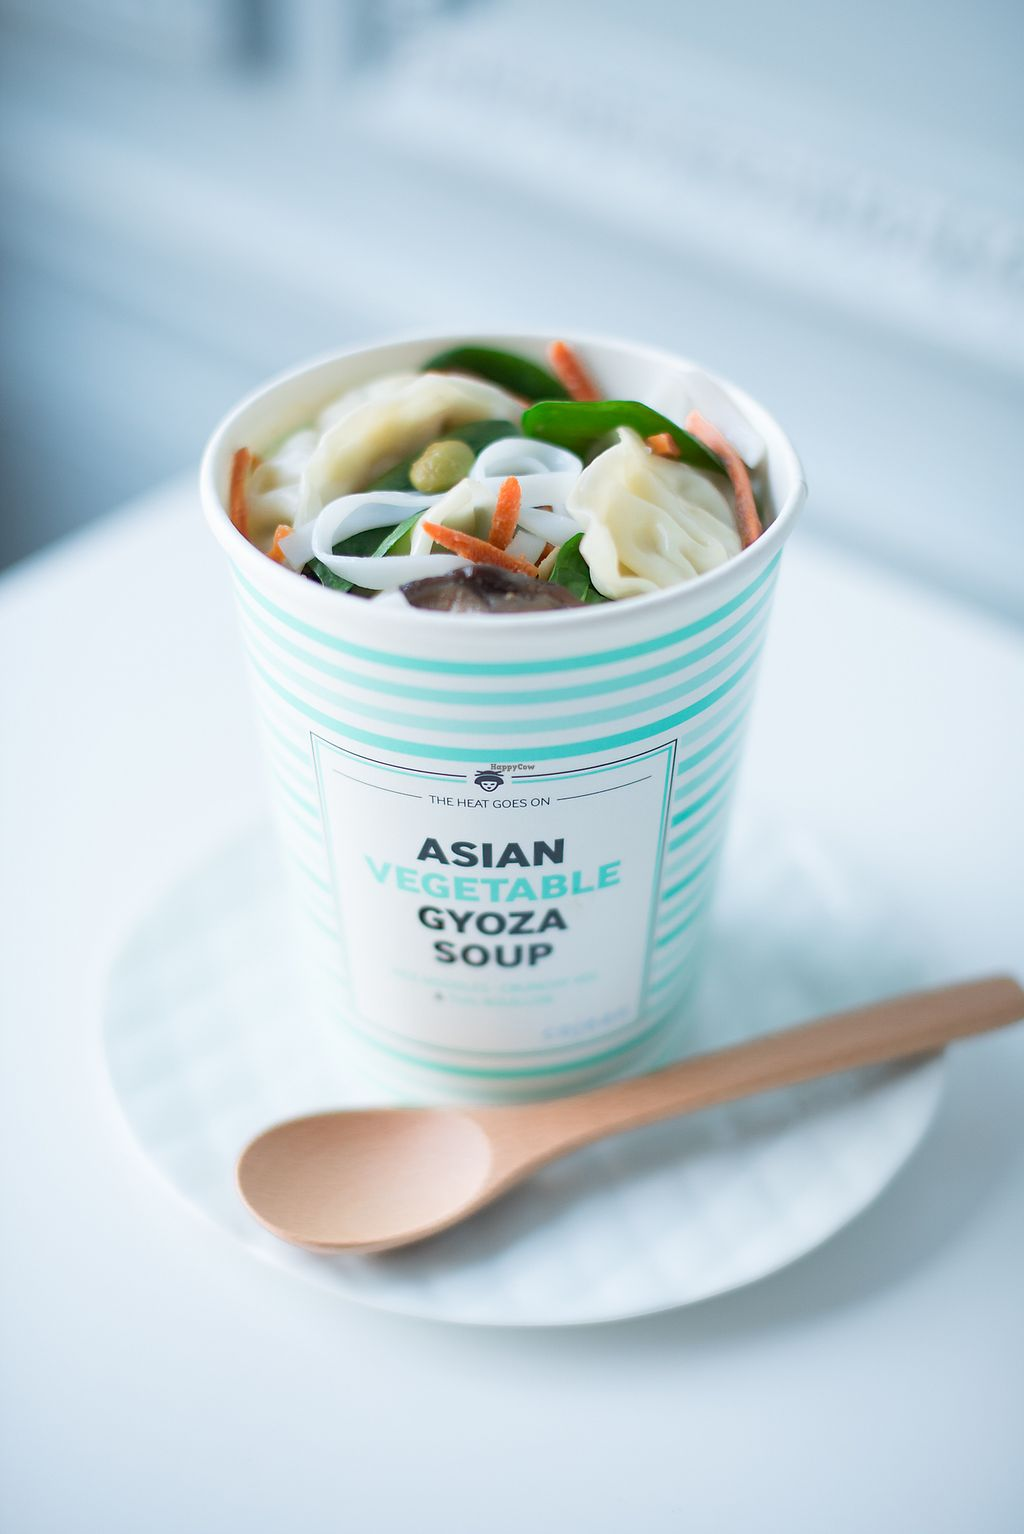 """Photo of Cojean - Printemps  by <a href=""""/members/profile/AngeleD"""">AngeleD</a> <br/>ASIAN GYOZA NOODLE SOUP <br/> December 18, 2017  - <a href='/contact/abuse/image/75377/336856'>Report</a>"""